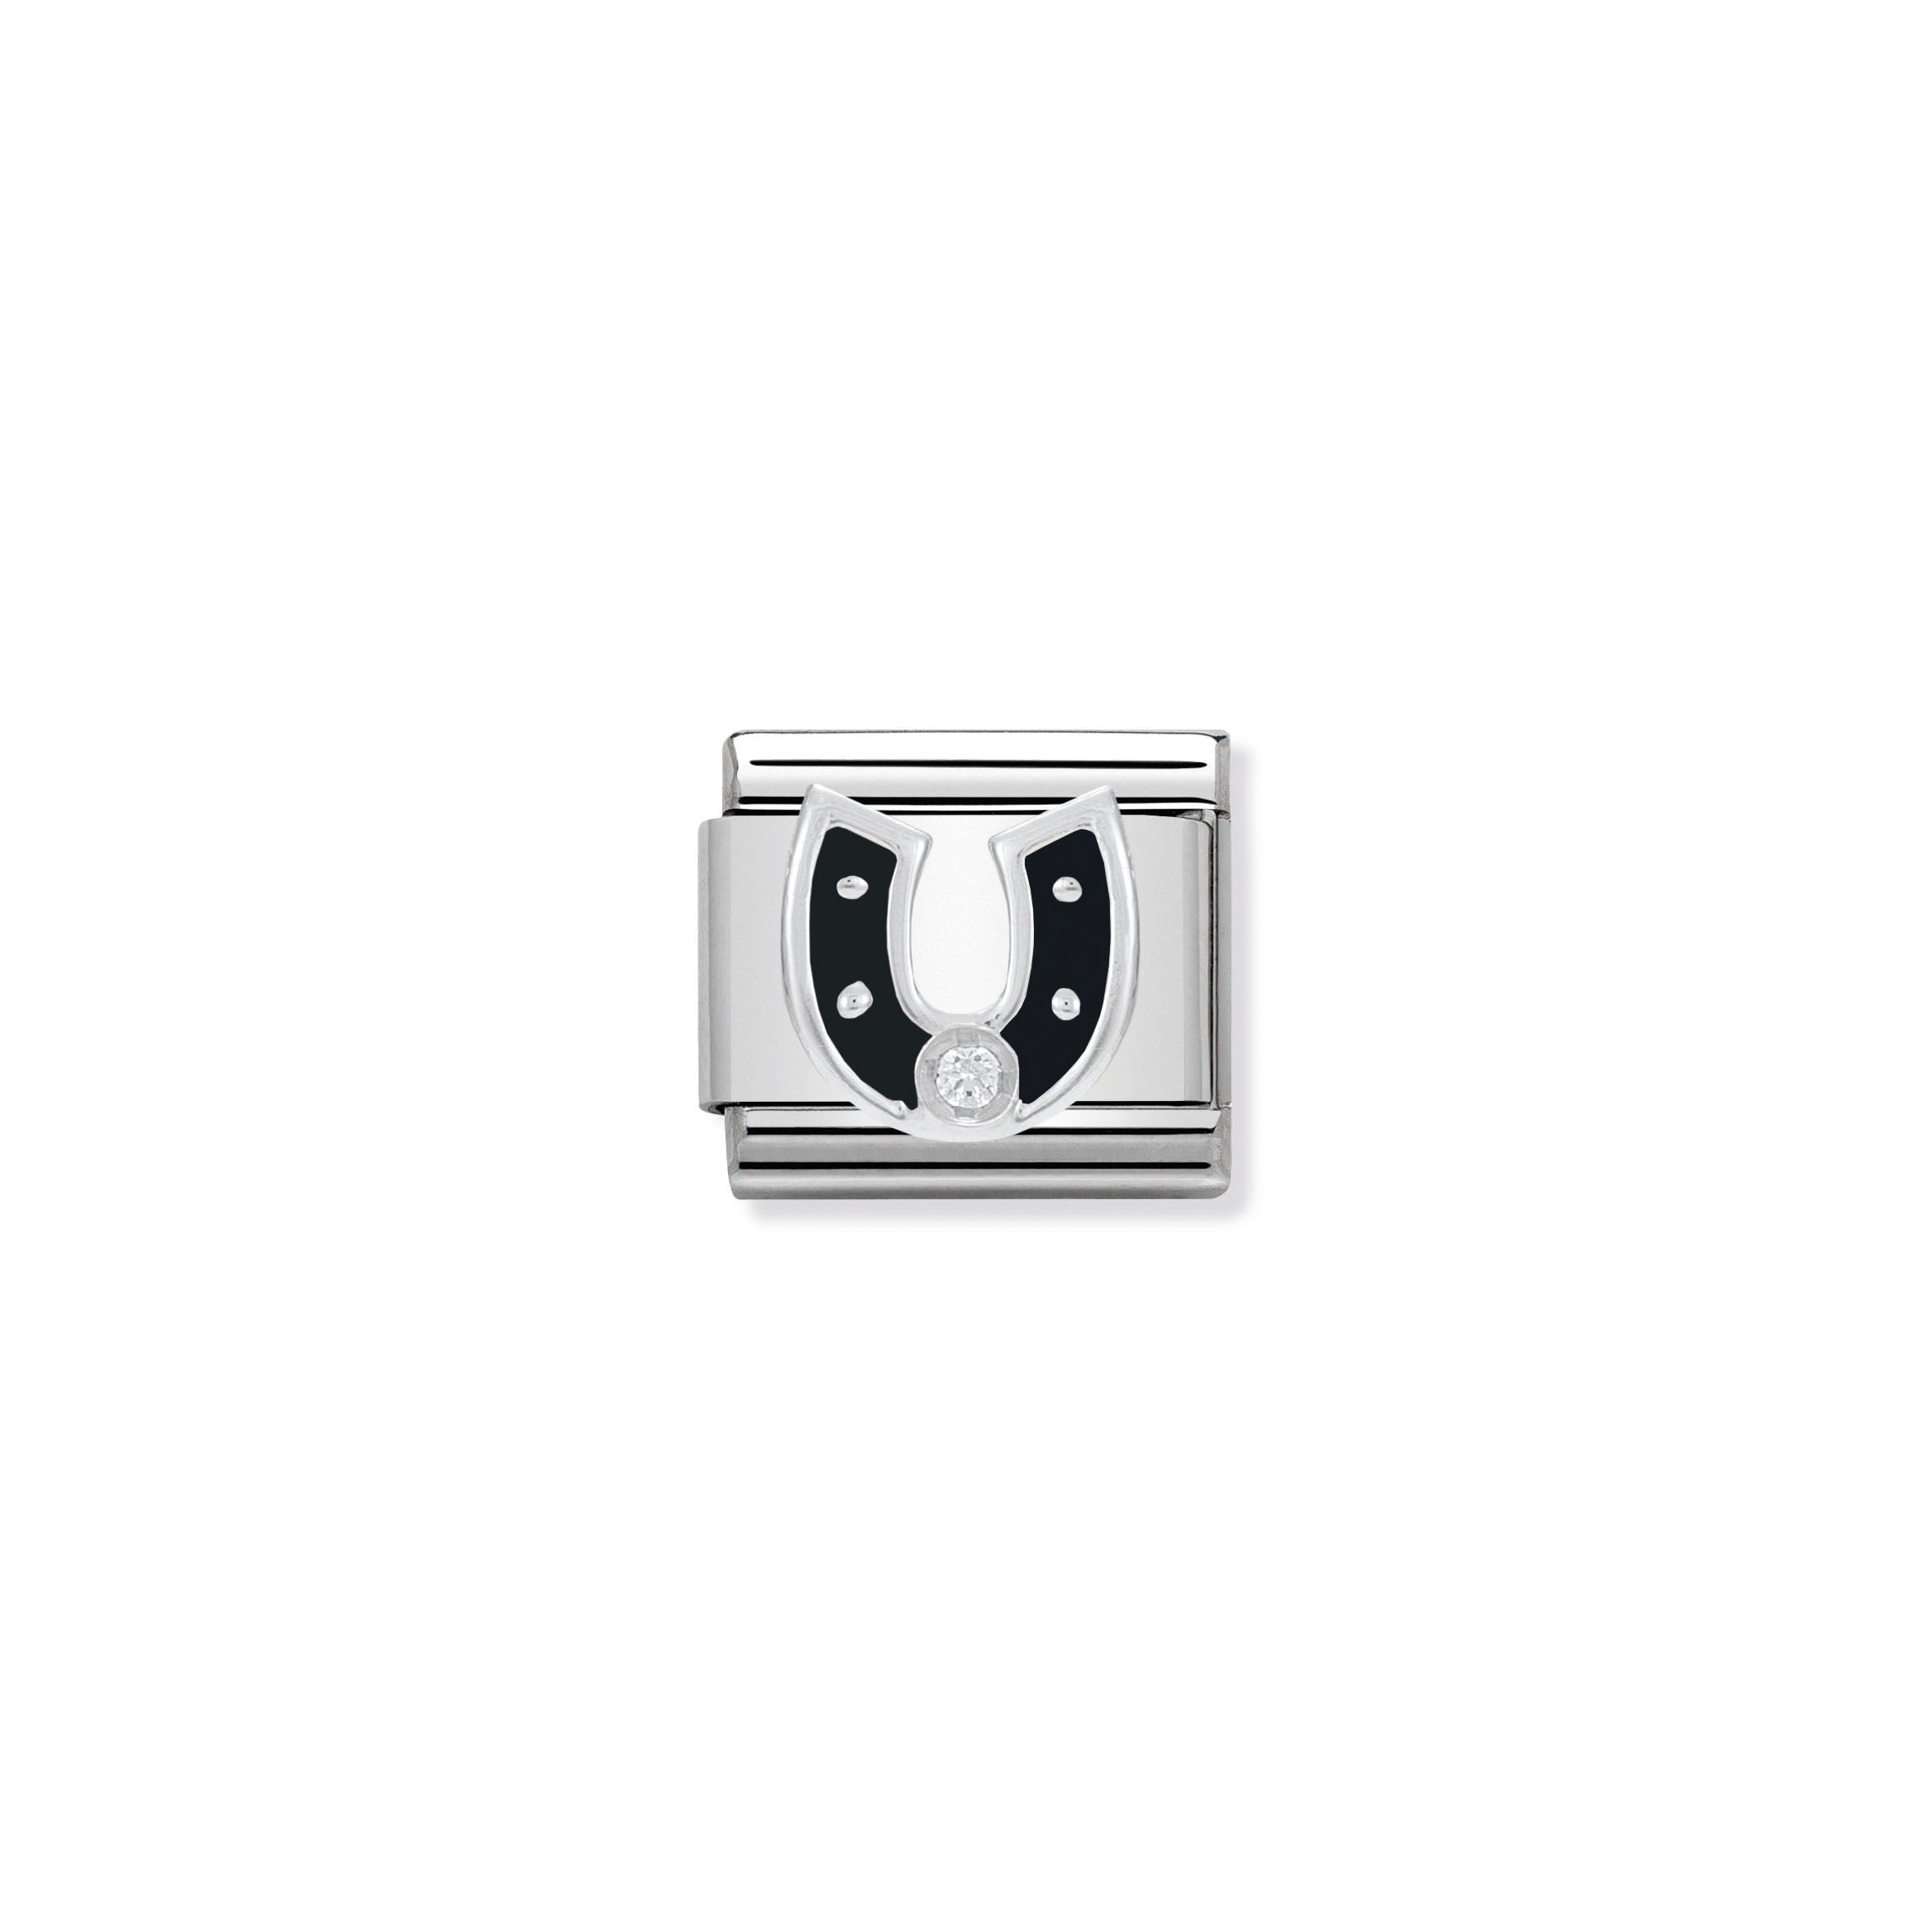 NOMINATION - Composable 330305 11 COMP Classic SYMBOLS  st/steel, 925 silver, enamel & cz (Black Horseshoe)